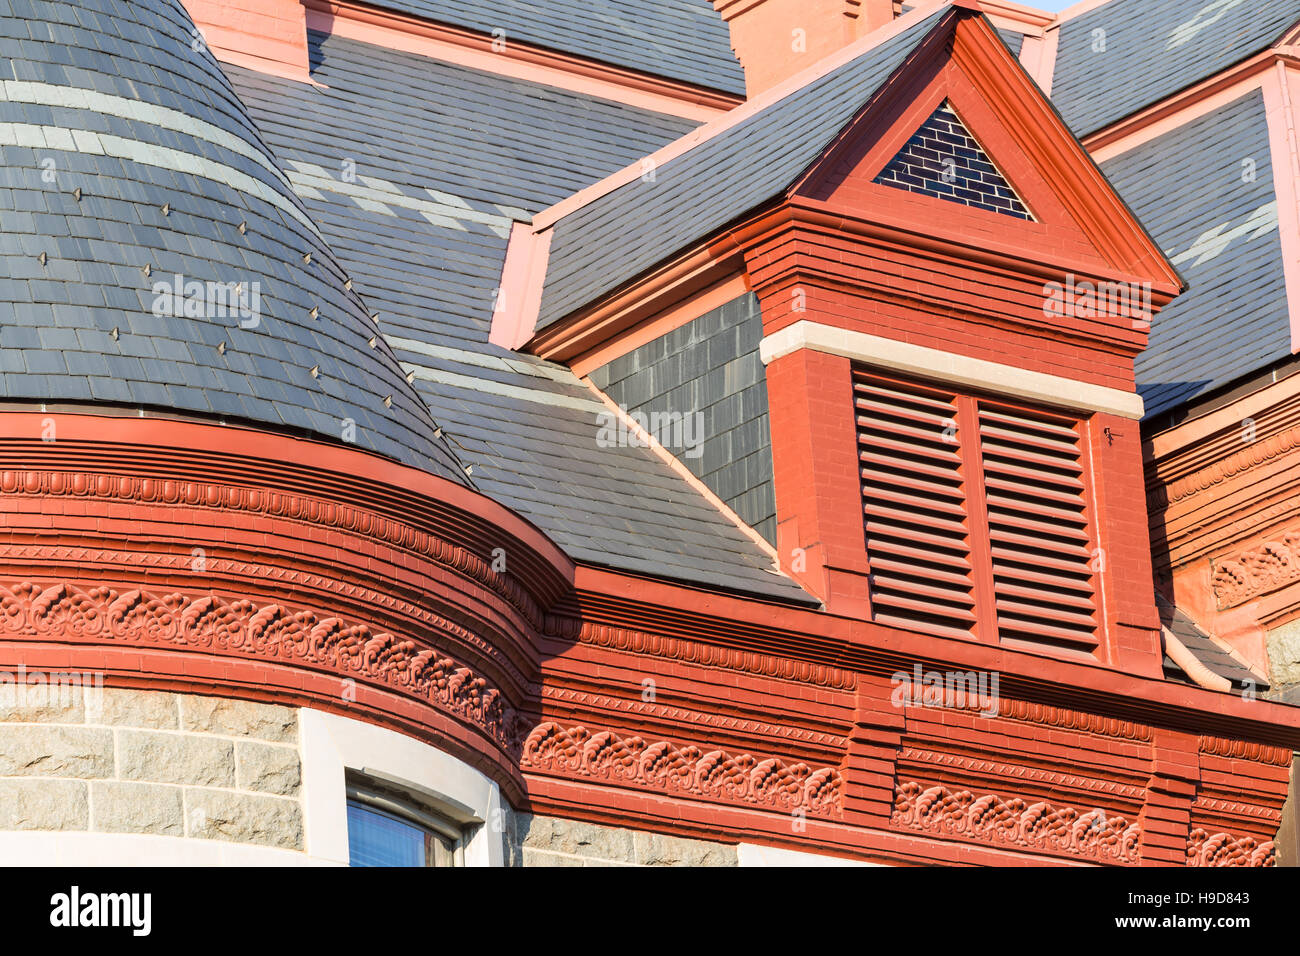 Architectural detail of the roof of the Pulaski County Courthouse in Little Rock, Arkansas. - Stock Image